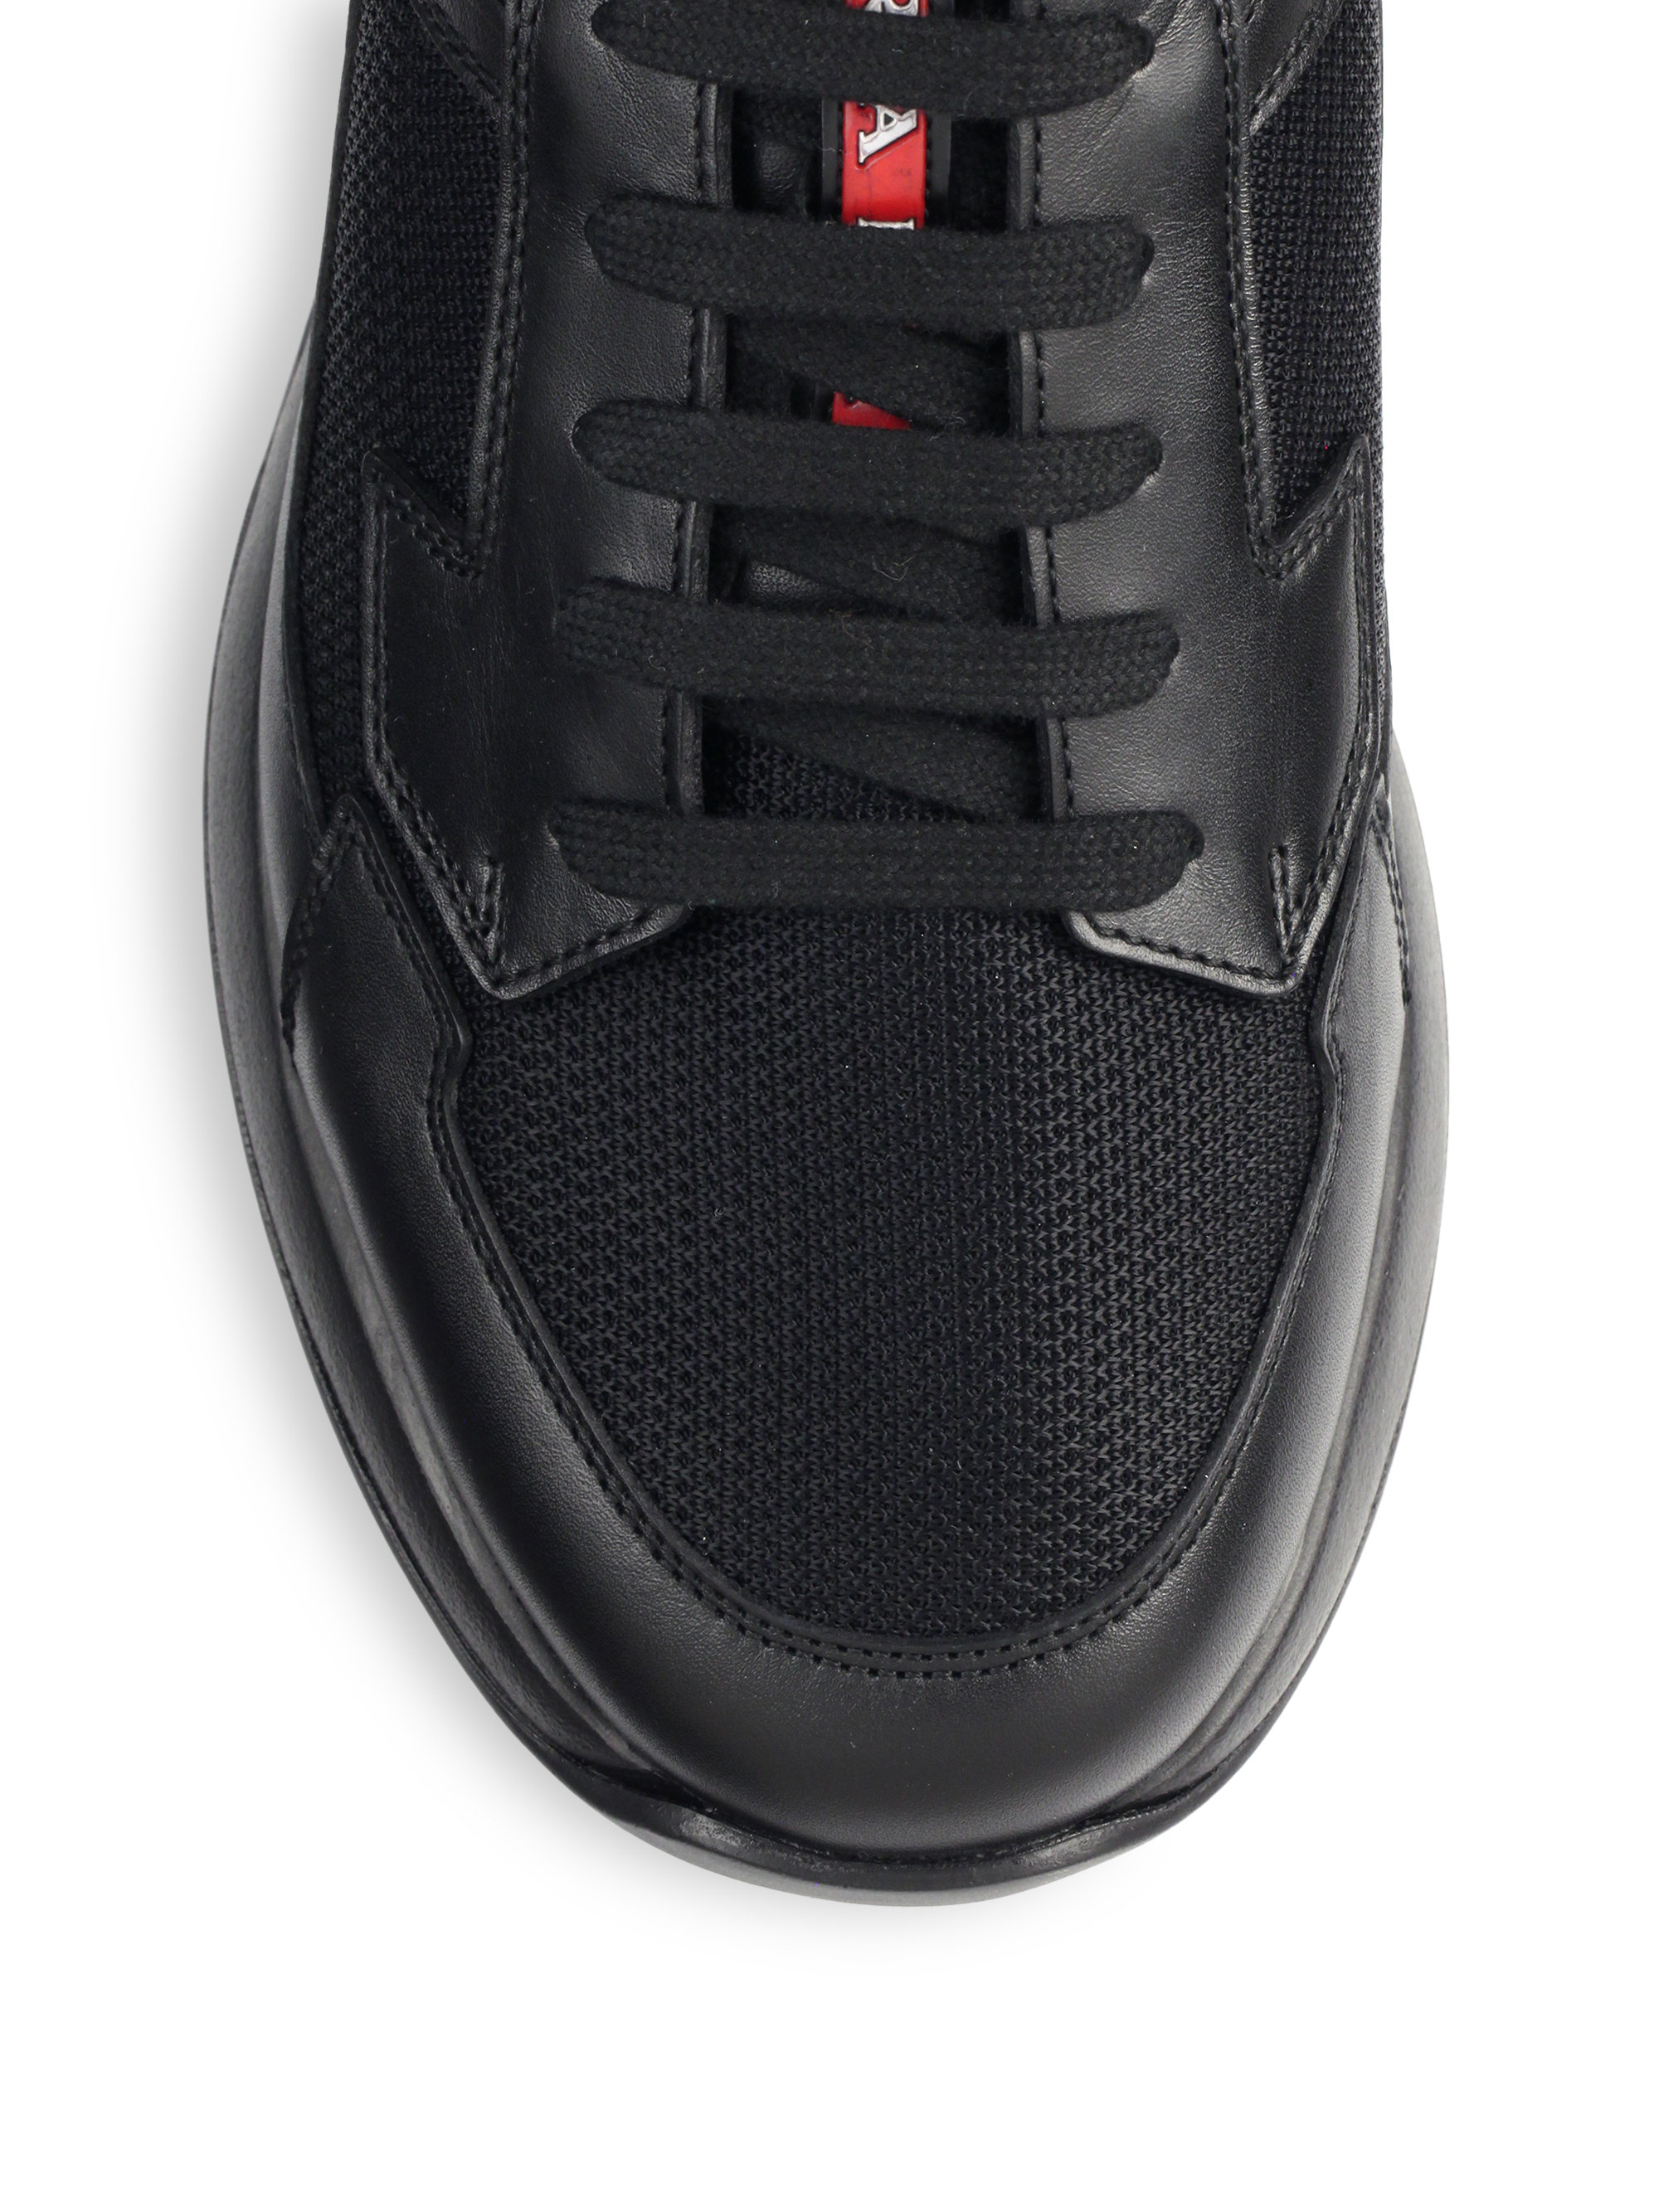 3140e5ac1d88 ... promo code for lyst prada leather running sneakers in black for men  69b4f 54efd